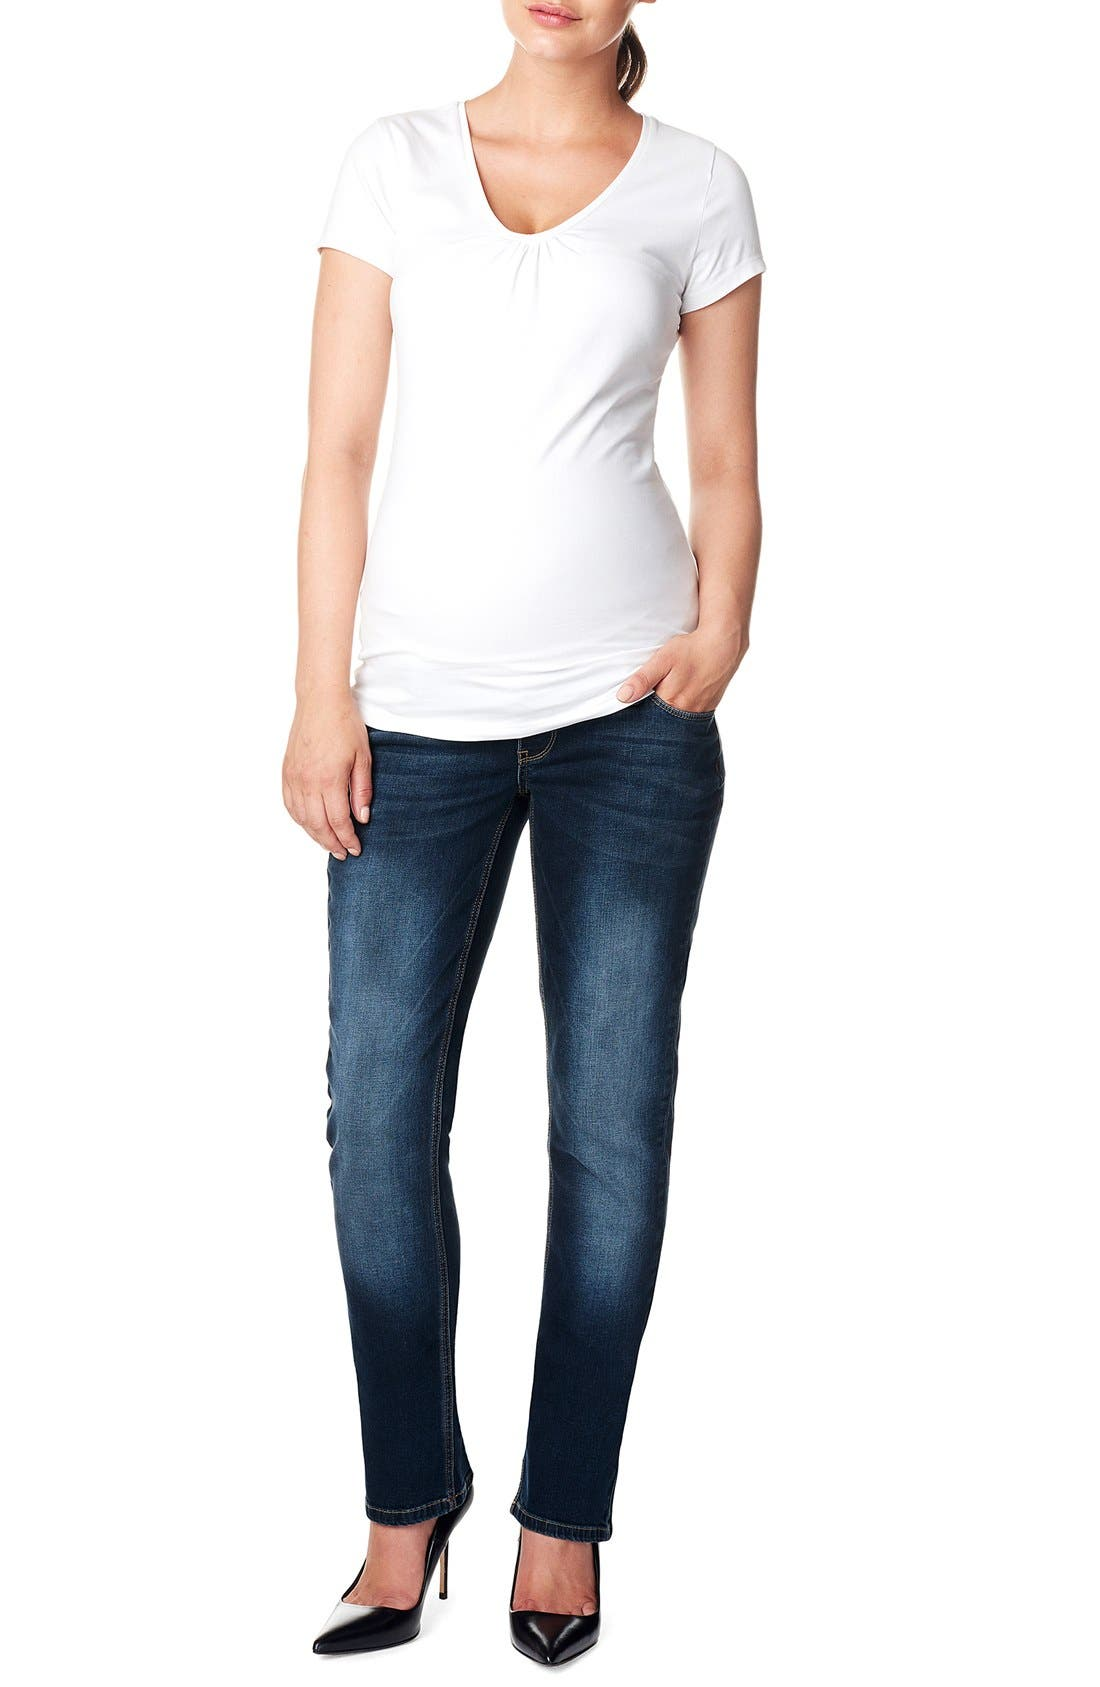 Main Image - Noppies 'Mena Comfort' Over the Belly Straight Leg Maternity Jeans